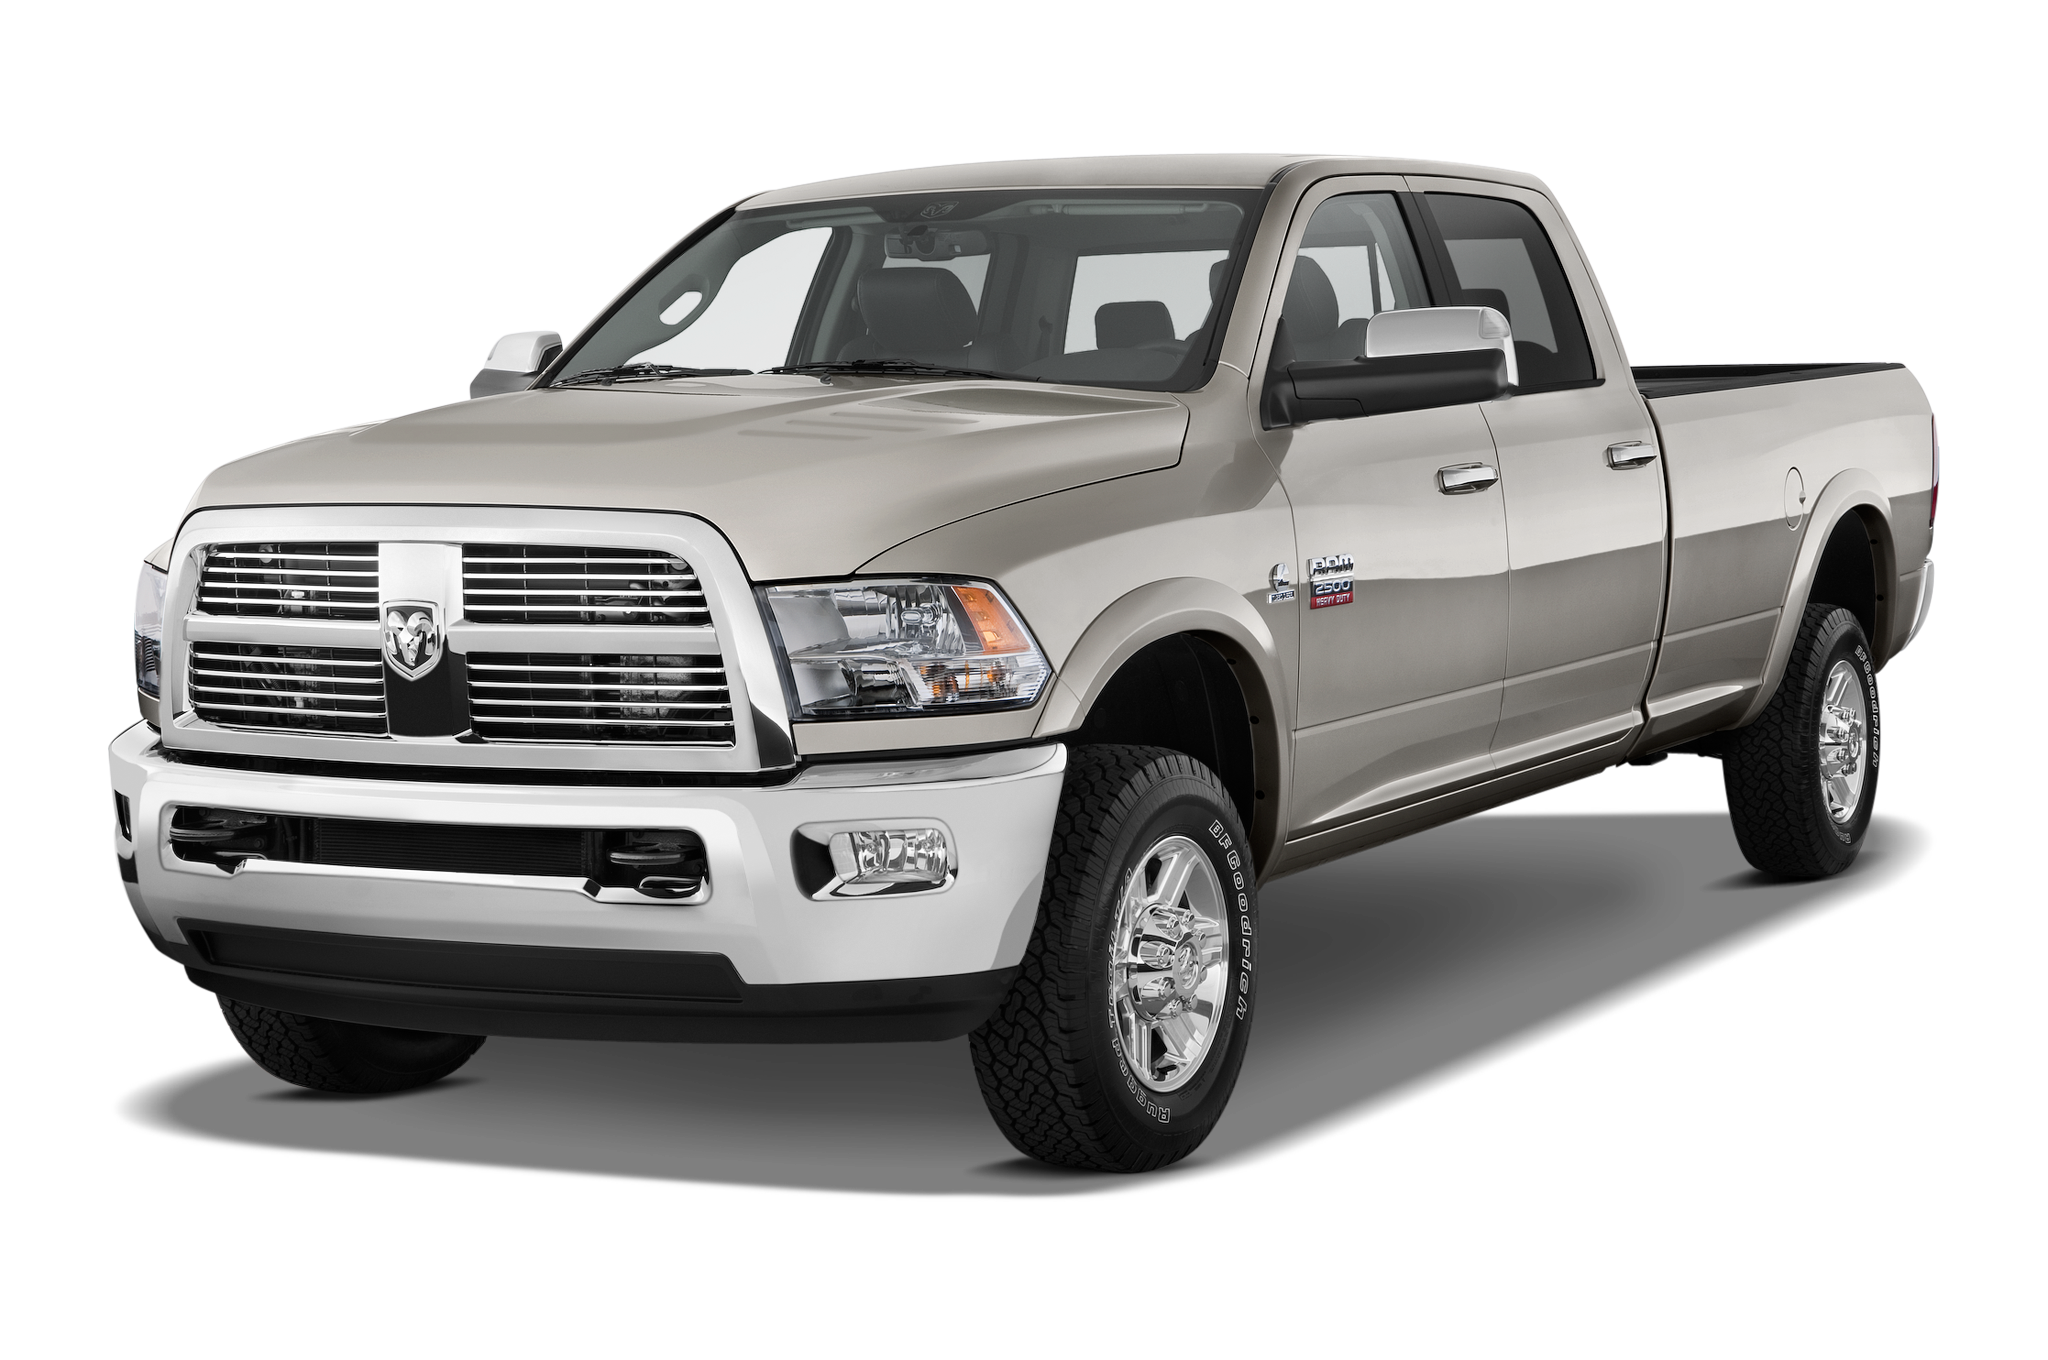 Dodge Mega Cab >> Recall Central: Chrysler Recalls Diesel Rams, VW Inspects Jetta, Golf Fuel Lines